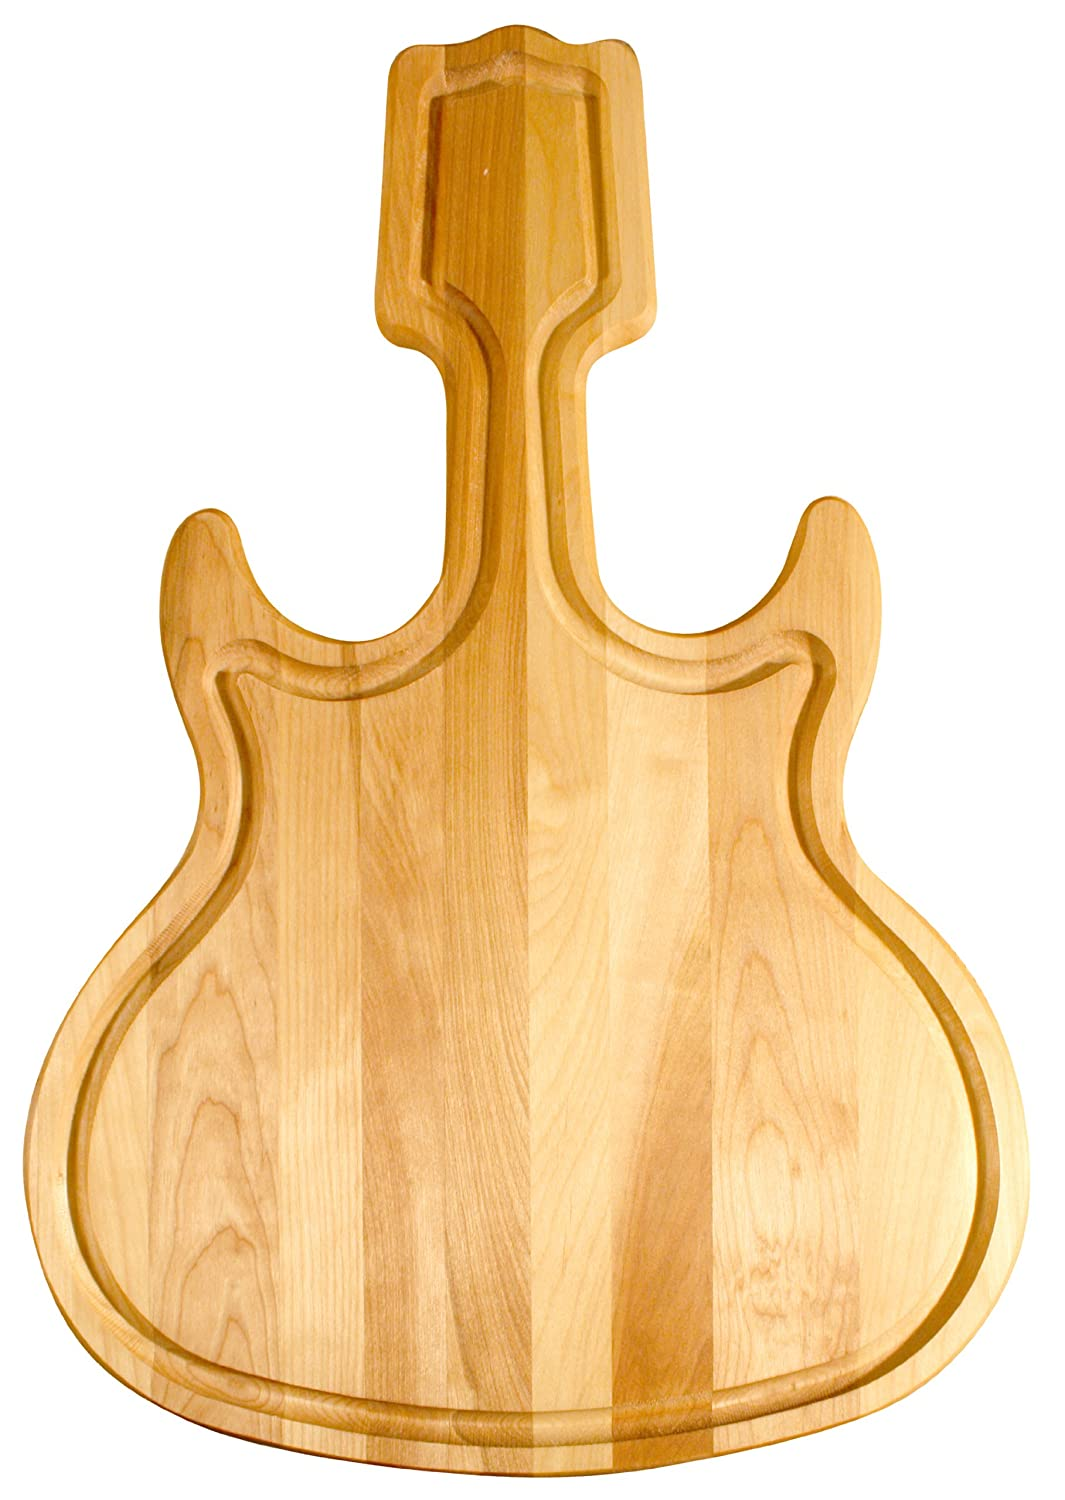 Catskill Craftsmen Guitar Shaped Cutting Board 1393